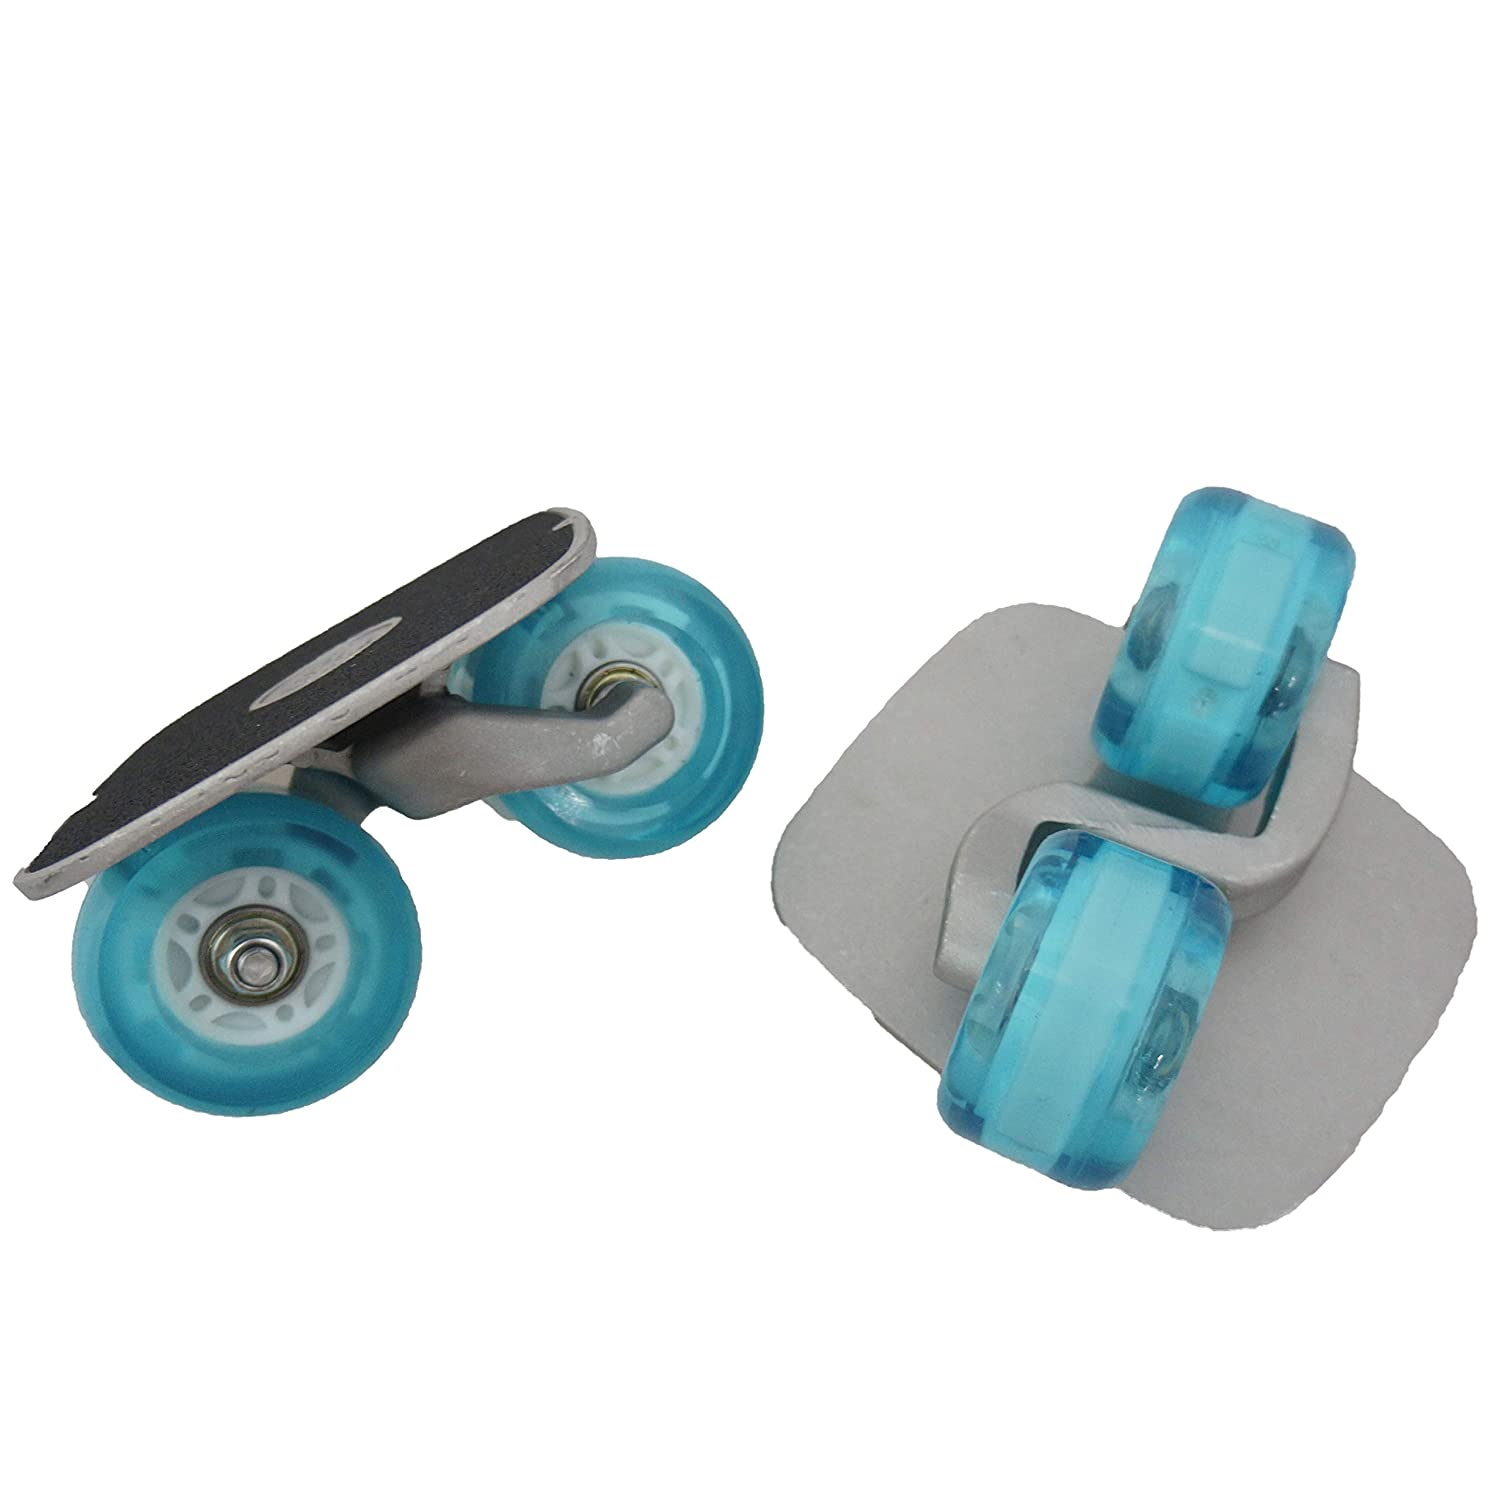 a6a64a12d Goldway Blue Drift Skate Plates with Pu Wheels ABEC-7 Bearings (Blue)   Amazon.ca  Sports   Outdoors